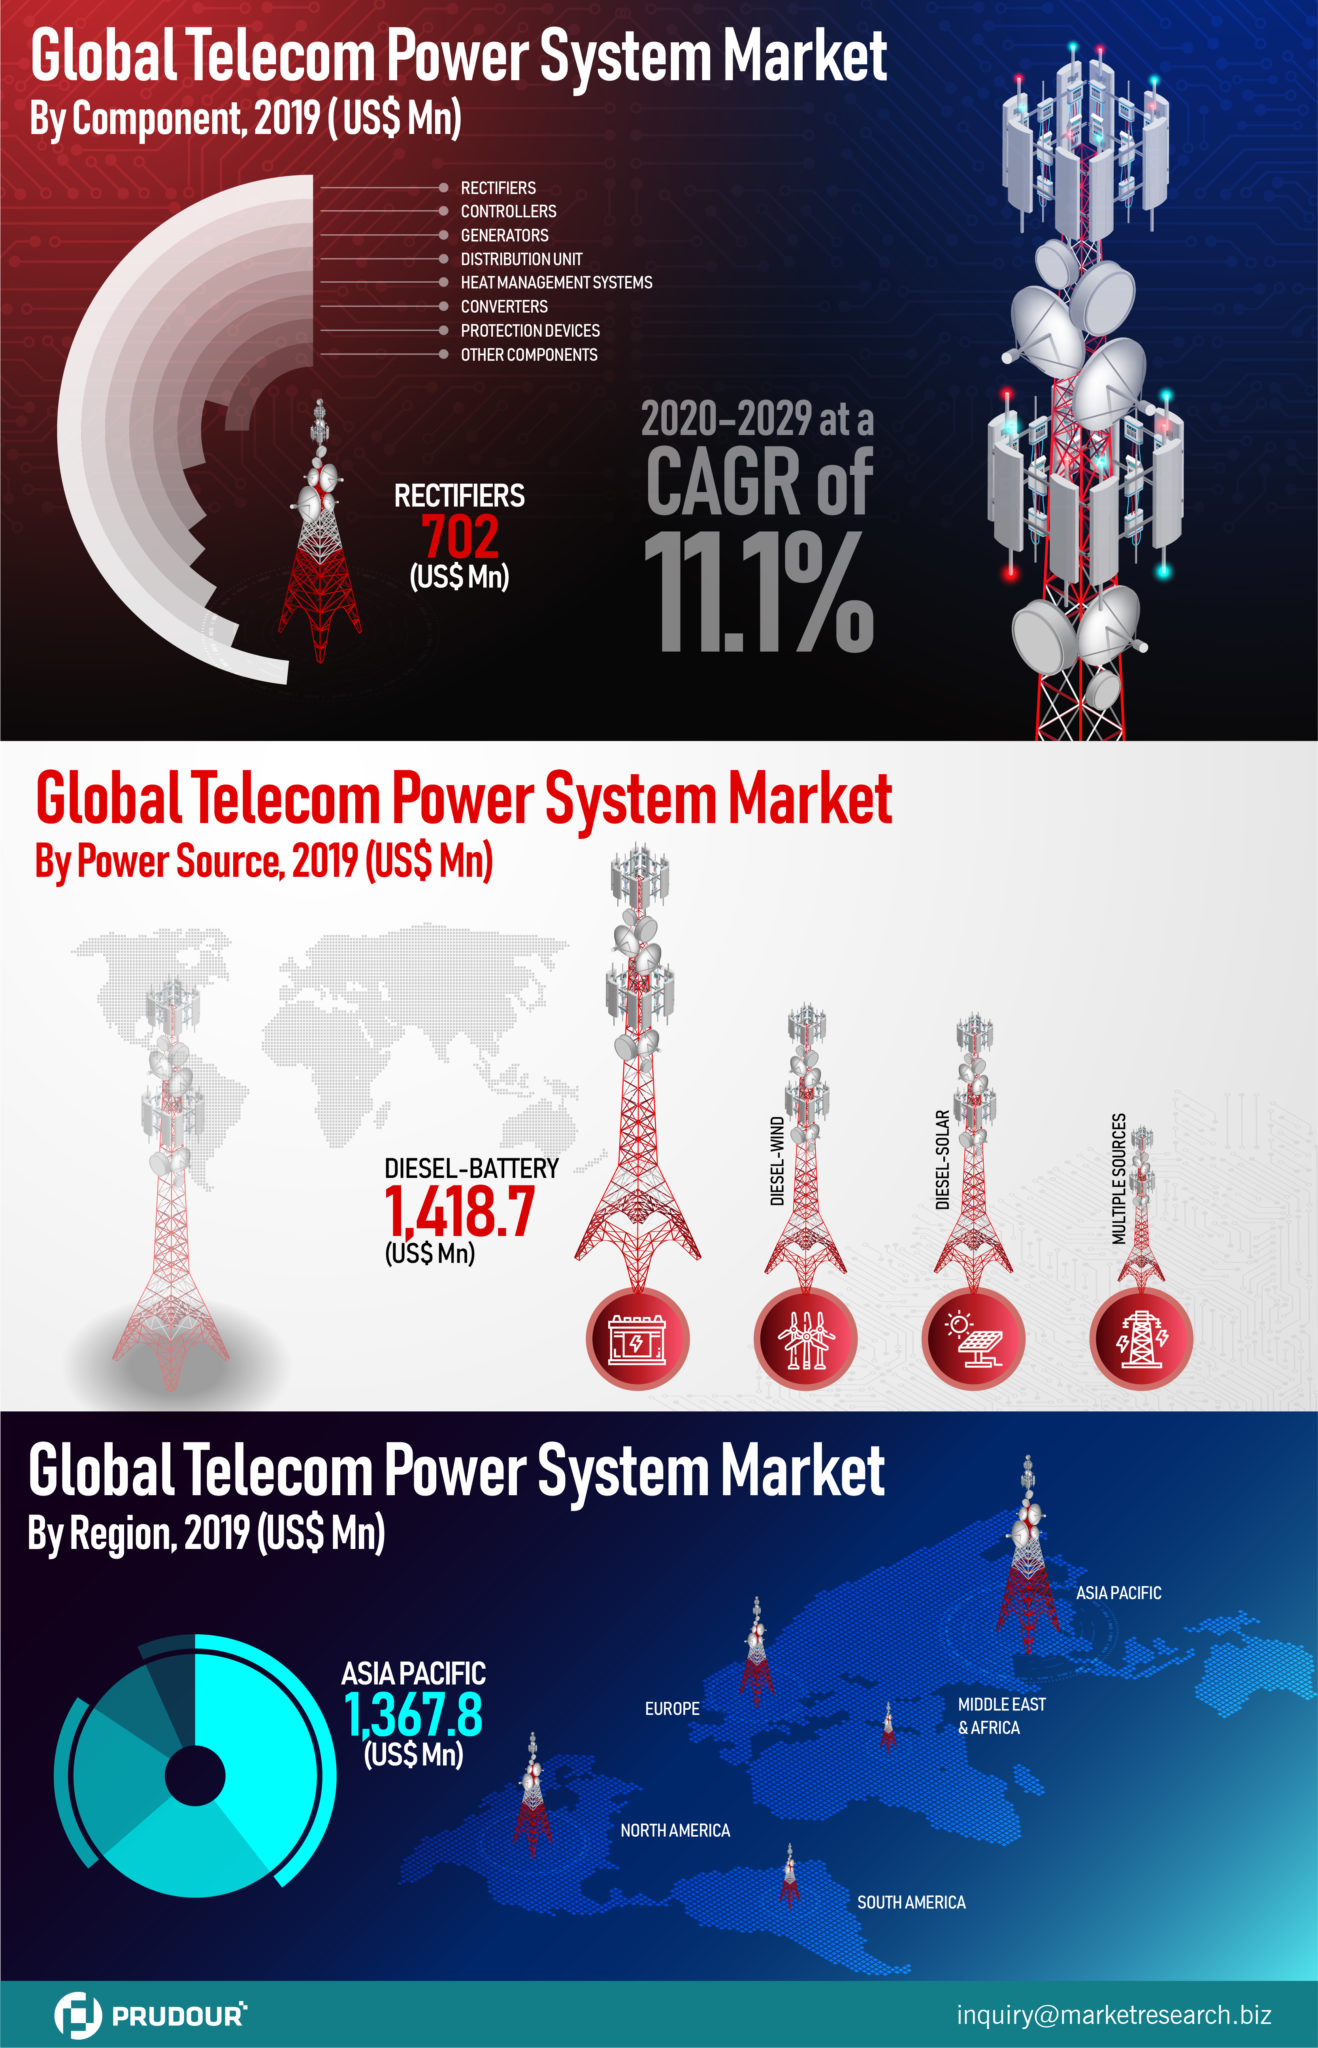 Infographics: Telecom Power Systems Market About To Hit CAGR of 11.1% From 2020 To 2029